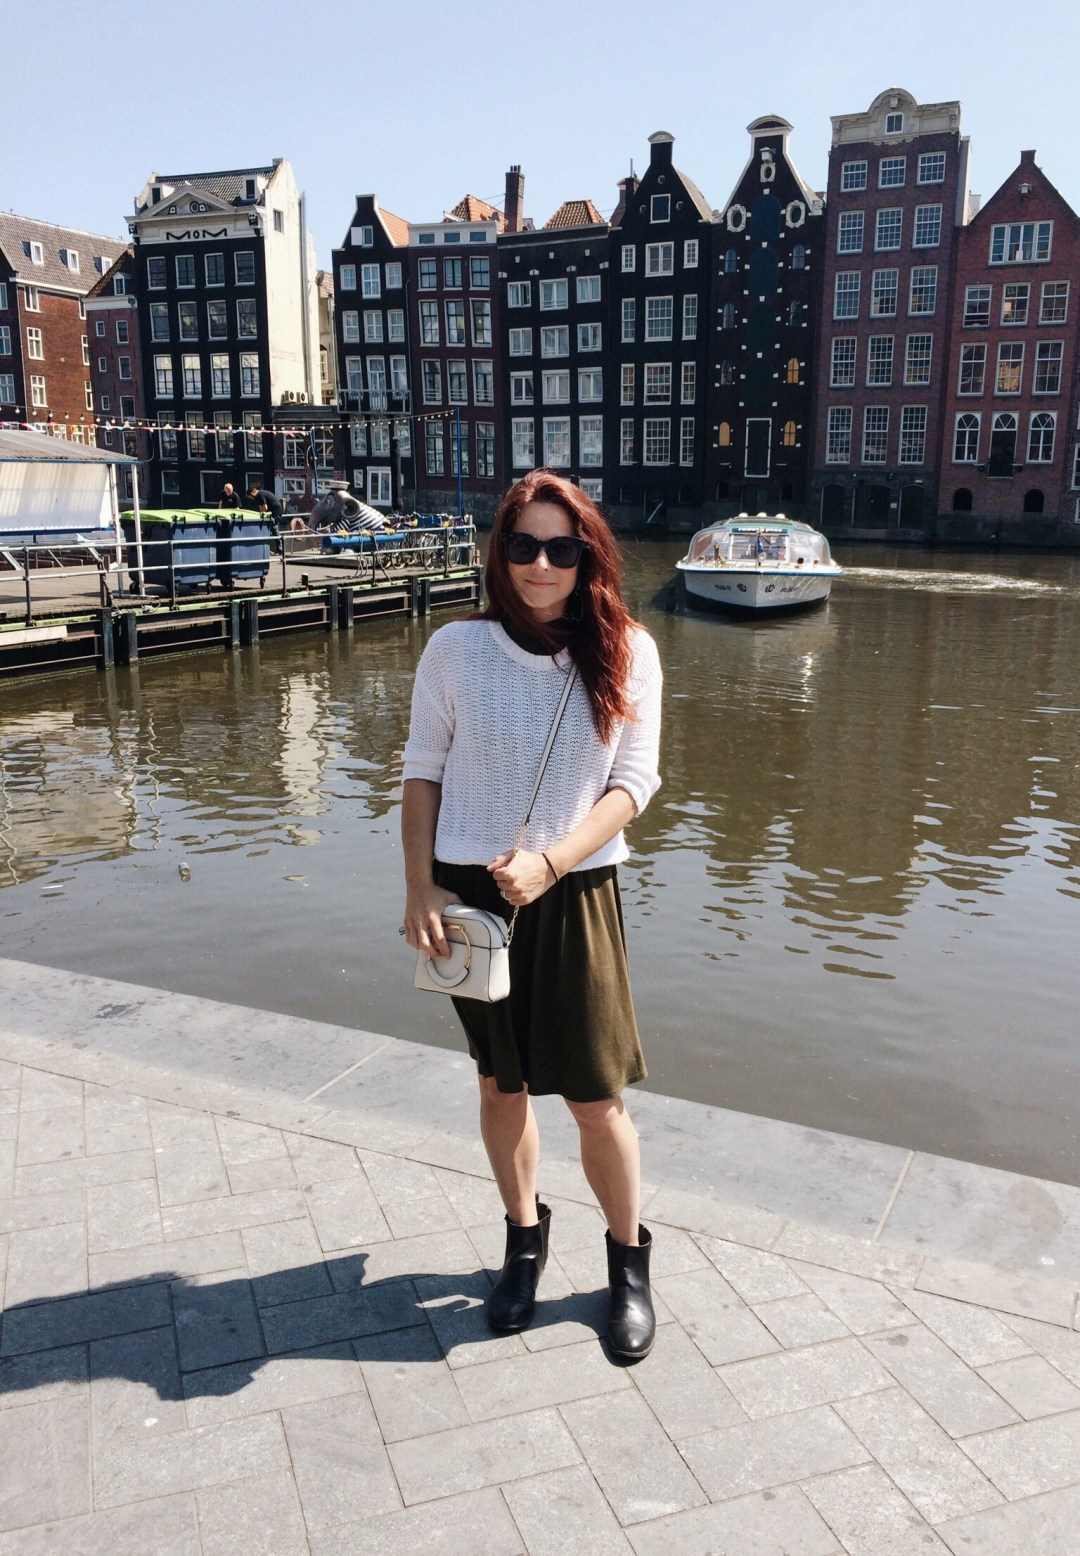 olive green swing dress, white sweater, chelsea boots, handle bar handbag, Amsterdam, Europe, vacation outfit ideas